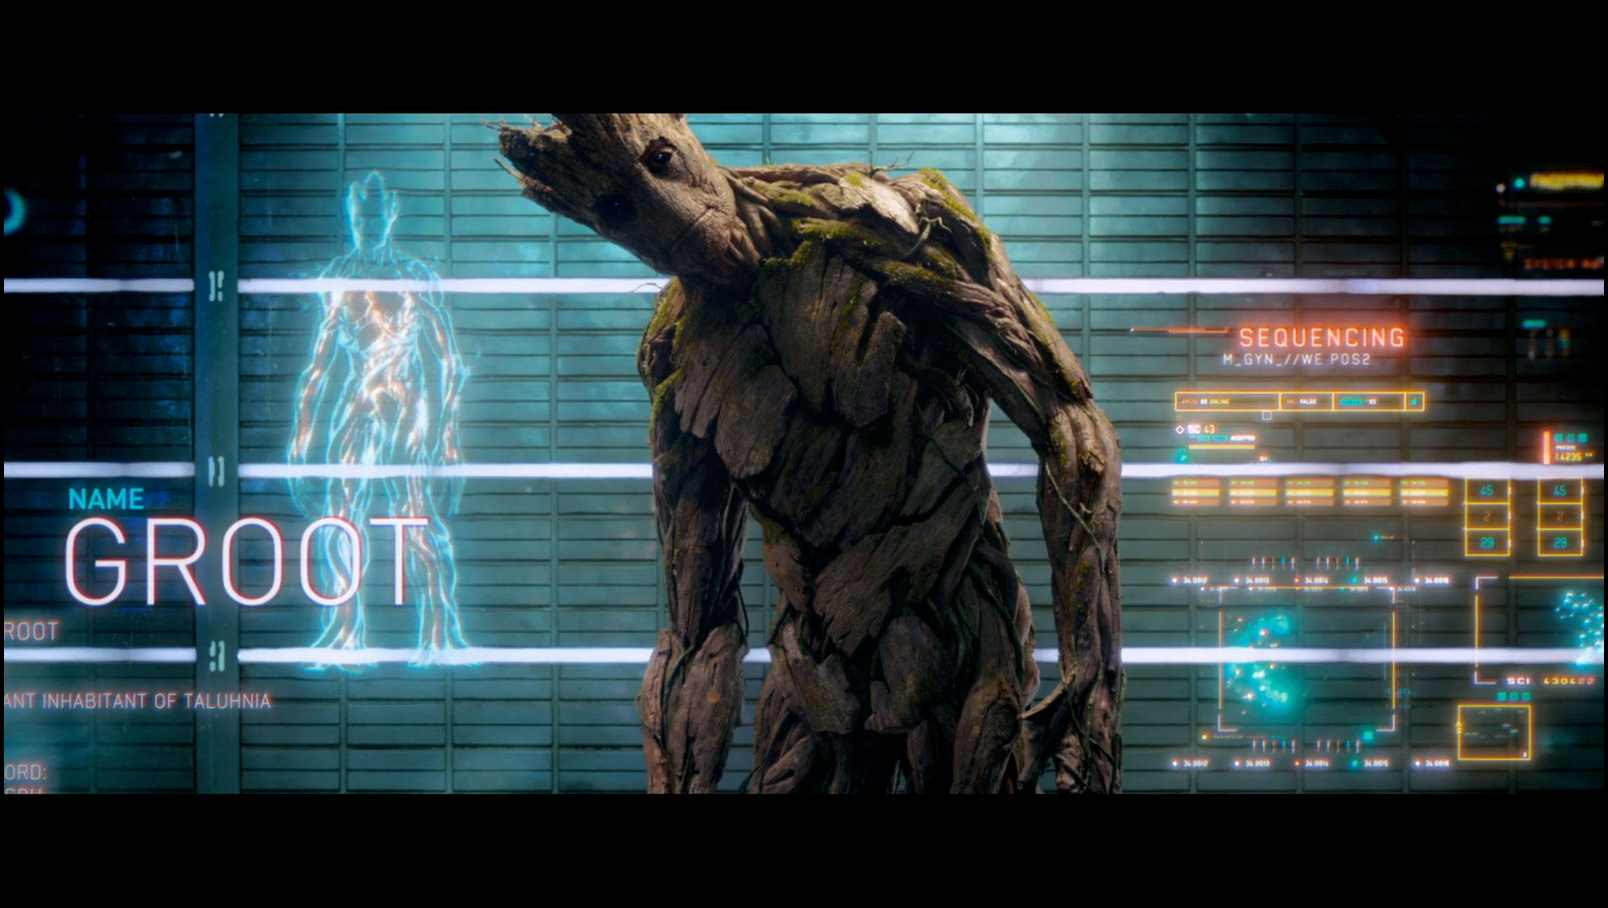 guardianes-de-la-galaxia-groot